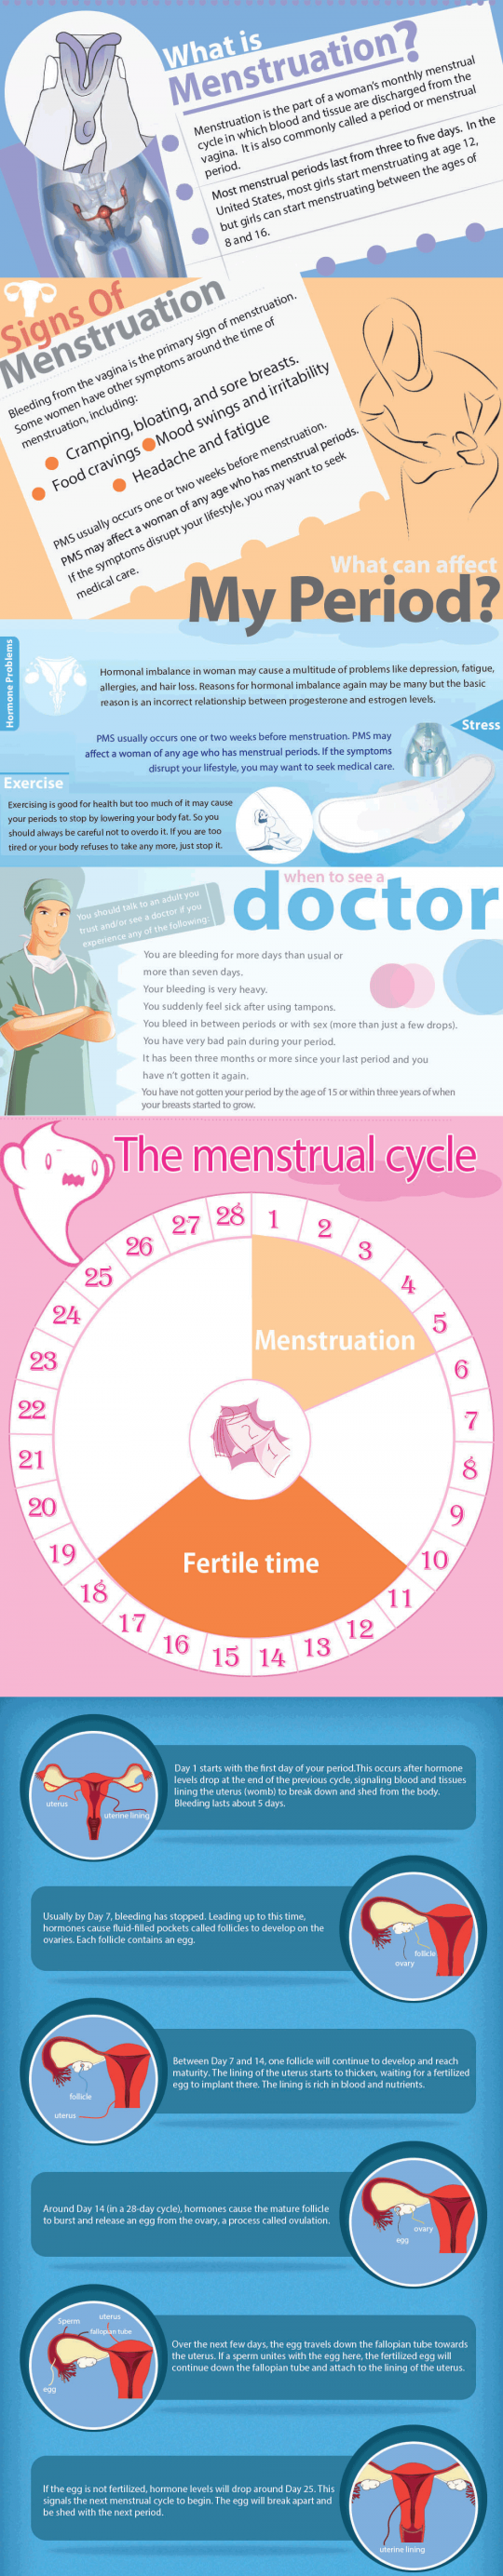 Menstruation and the Menstrual Cycle (Infographic)